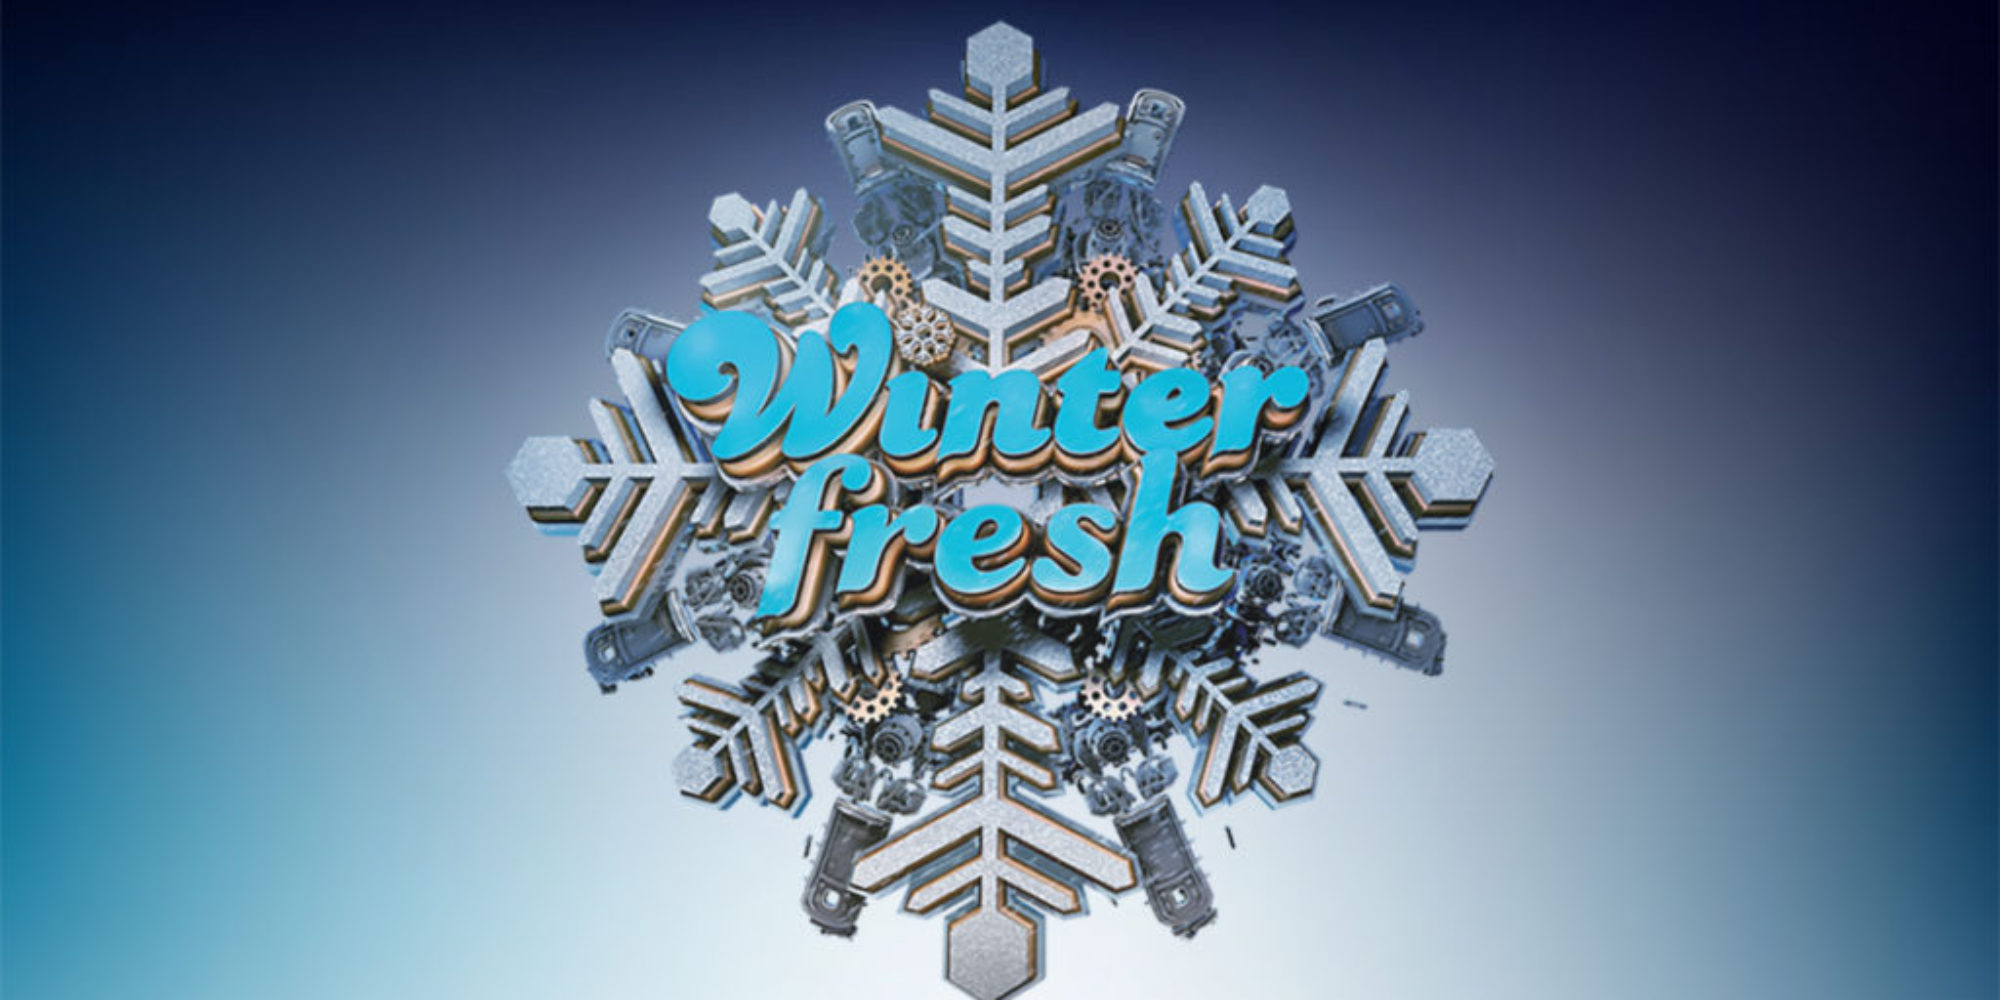 Winterfresh tickets now available in stores!